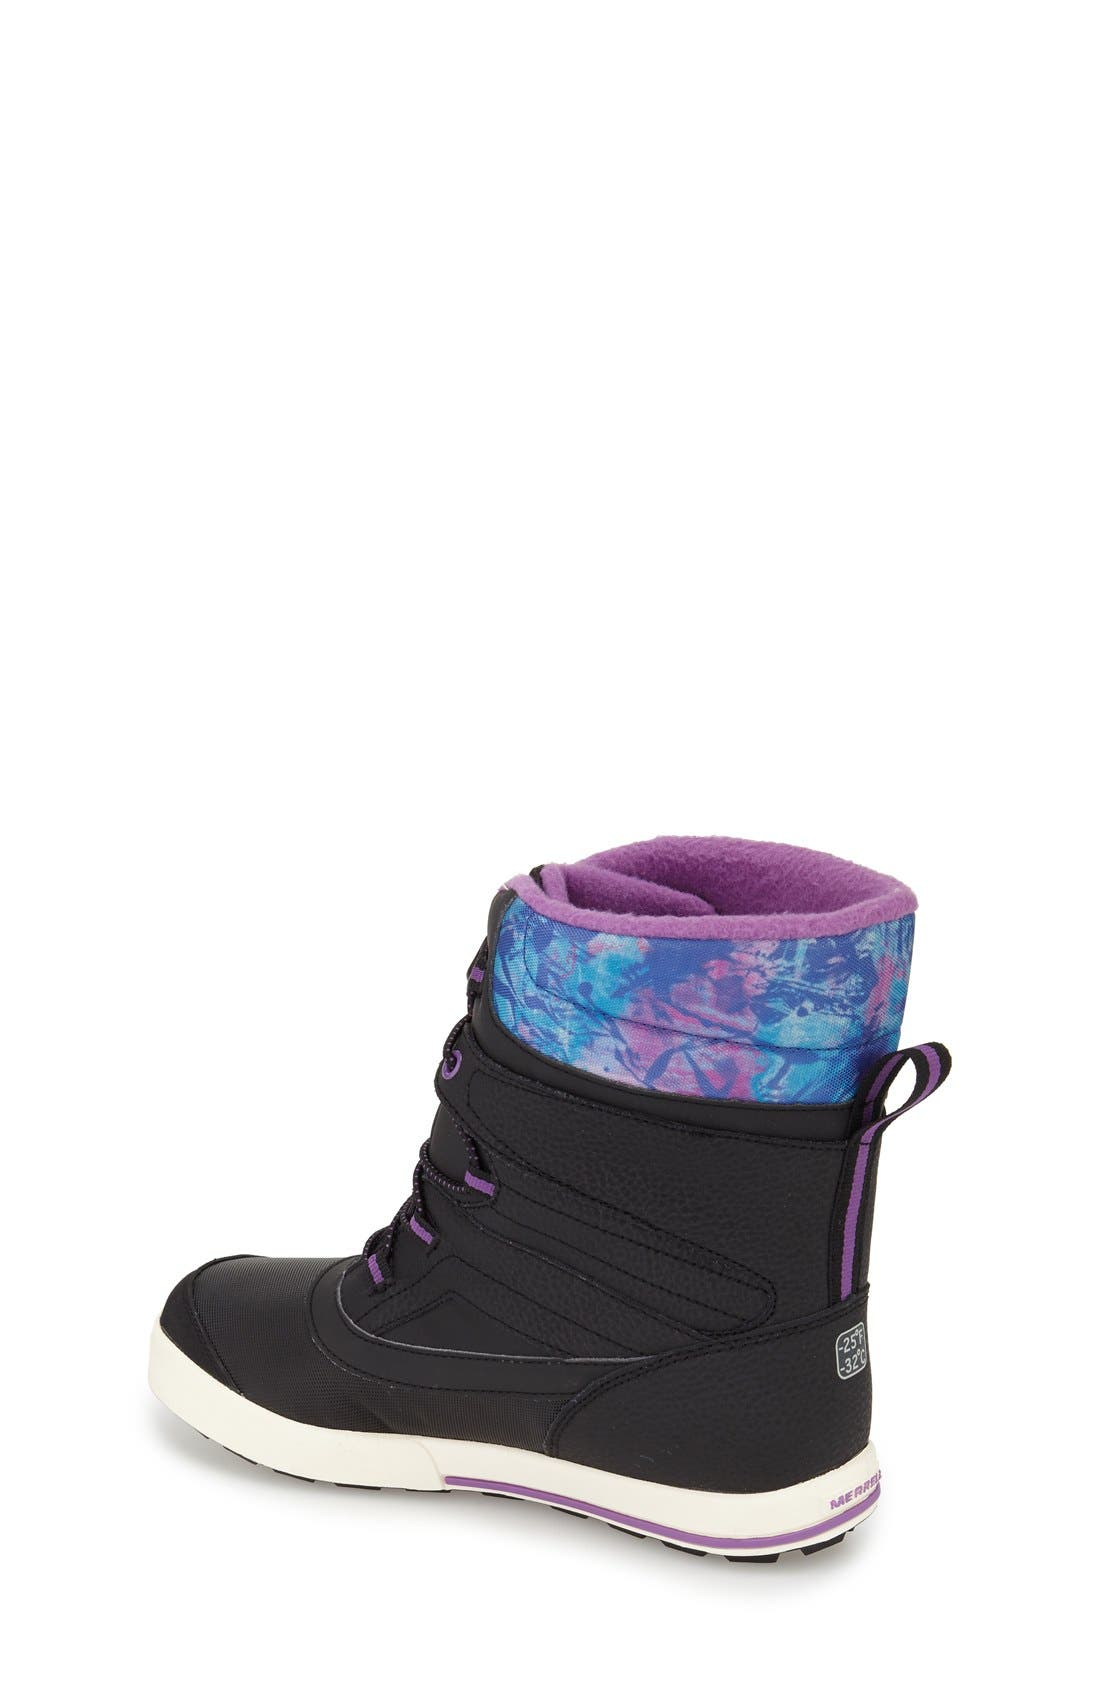 MERRELL,                             'Snow Bank 2' Waterproof Boot,                             Alternate thumbnail 2, color,                             BLACK/ PRINT/ BERRY LEATHER